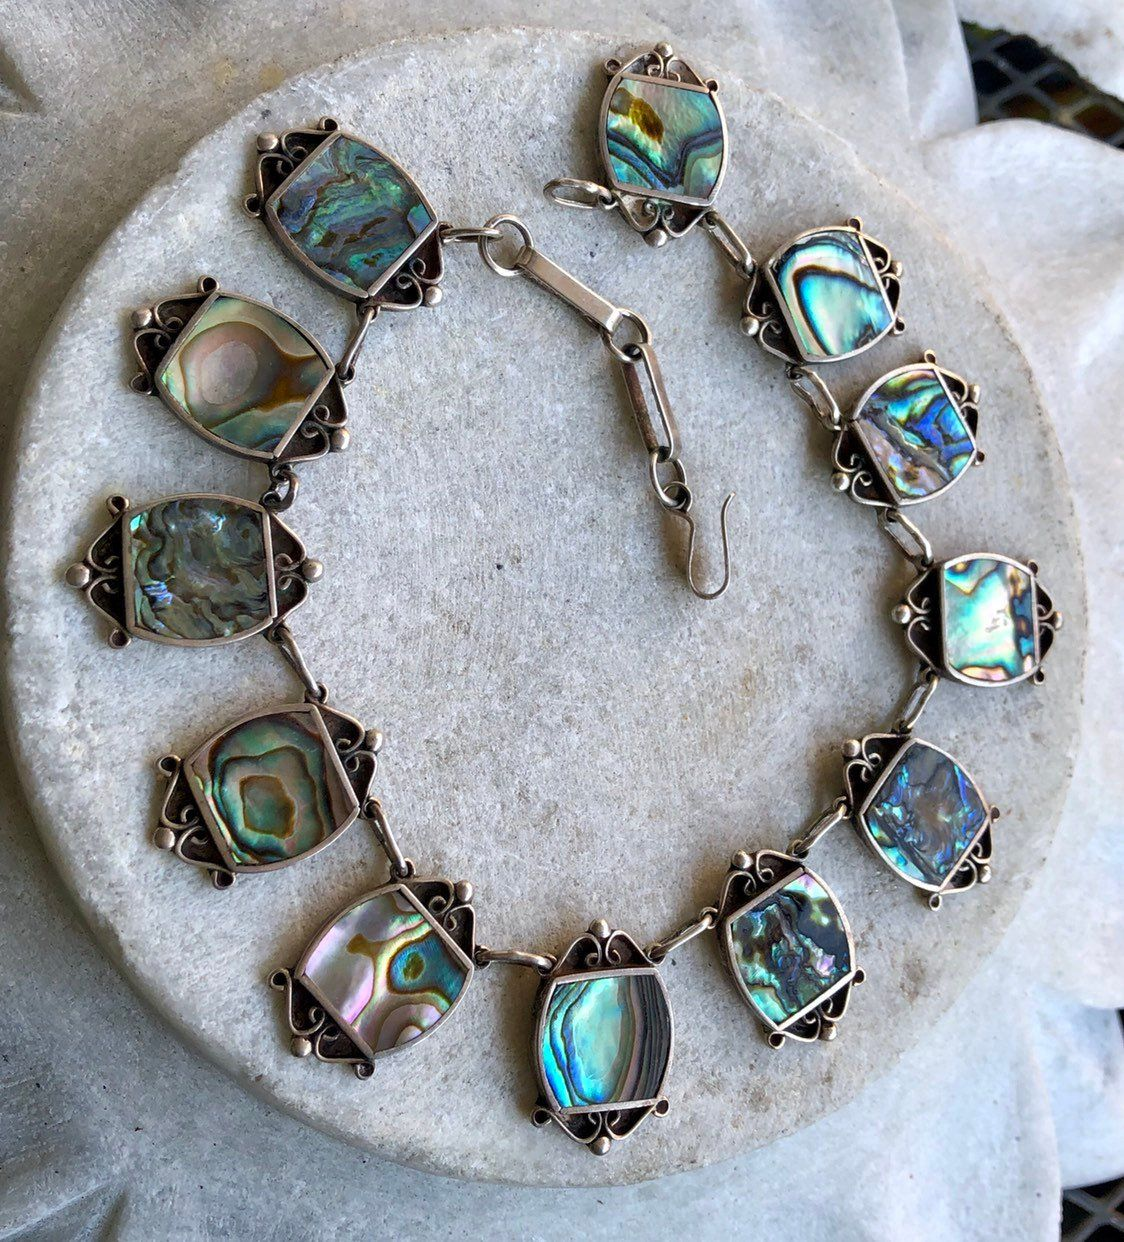 Vintage Sterling Silver Gray Abalone Shell Pendant Necklace